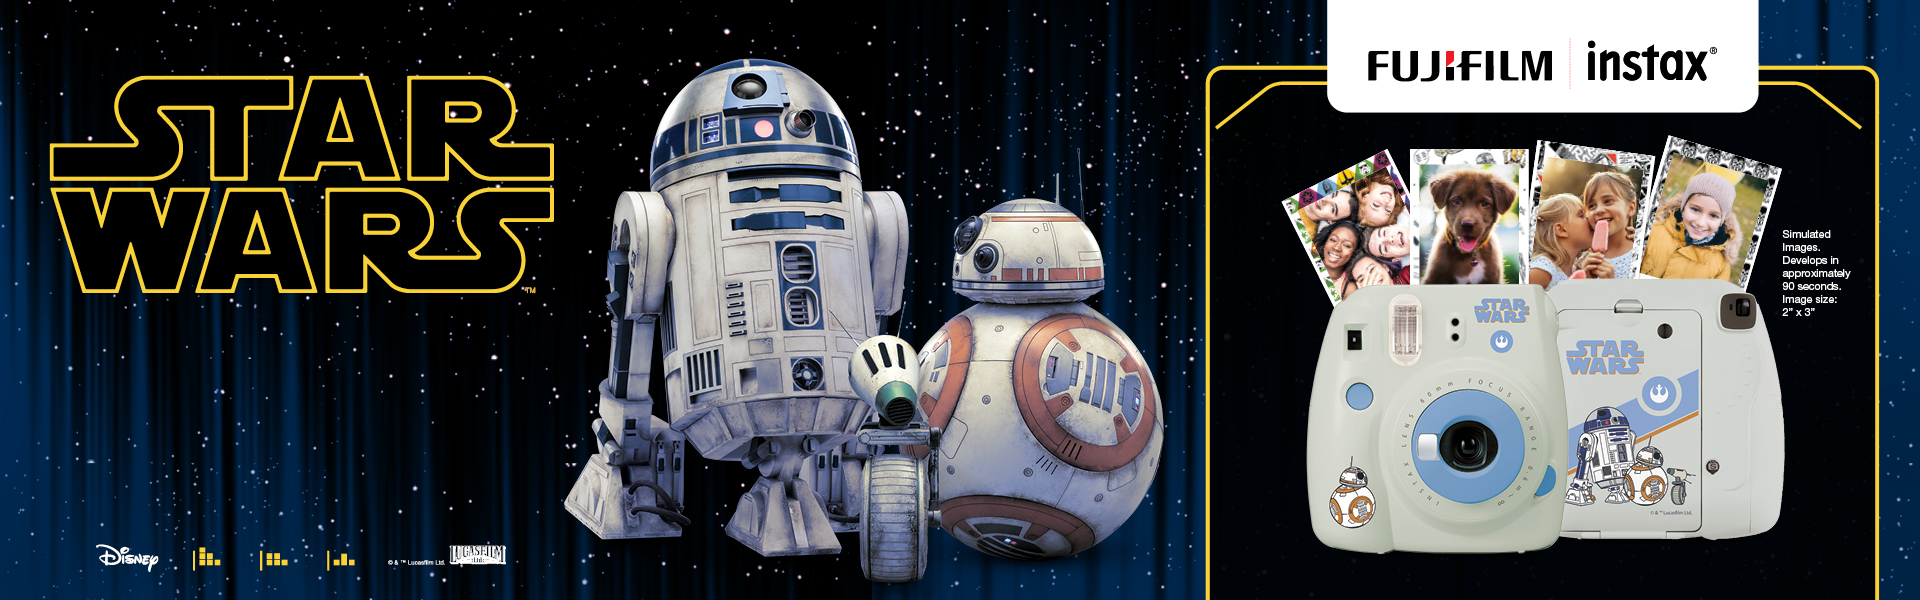 Image of Star Wars characters with mini 9 camera on the right